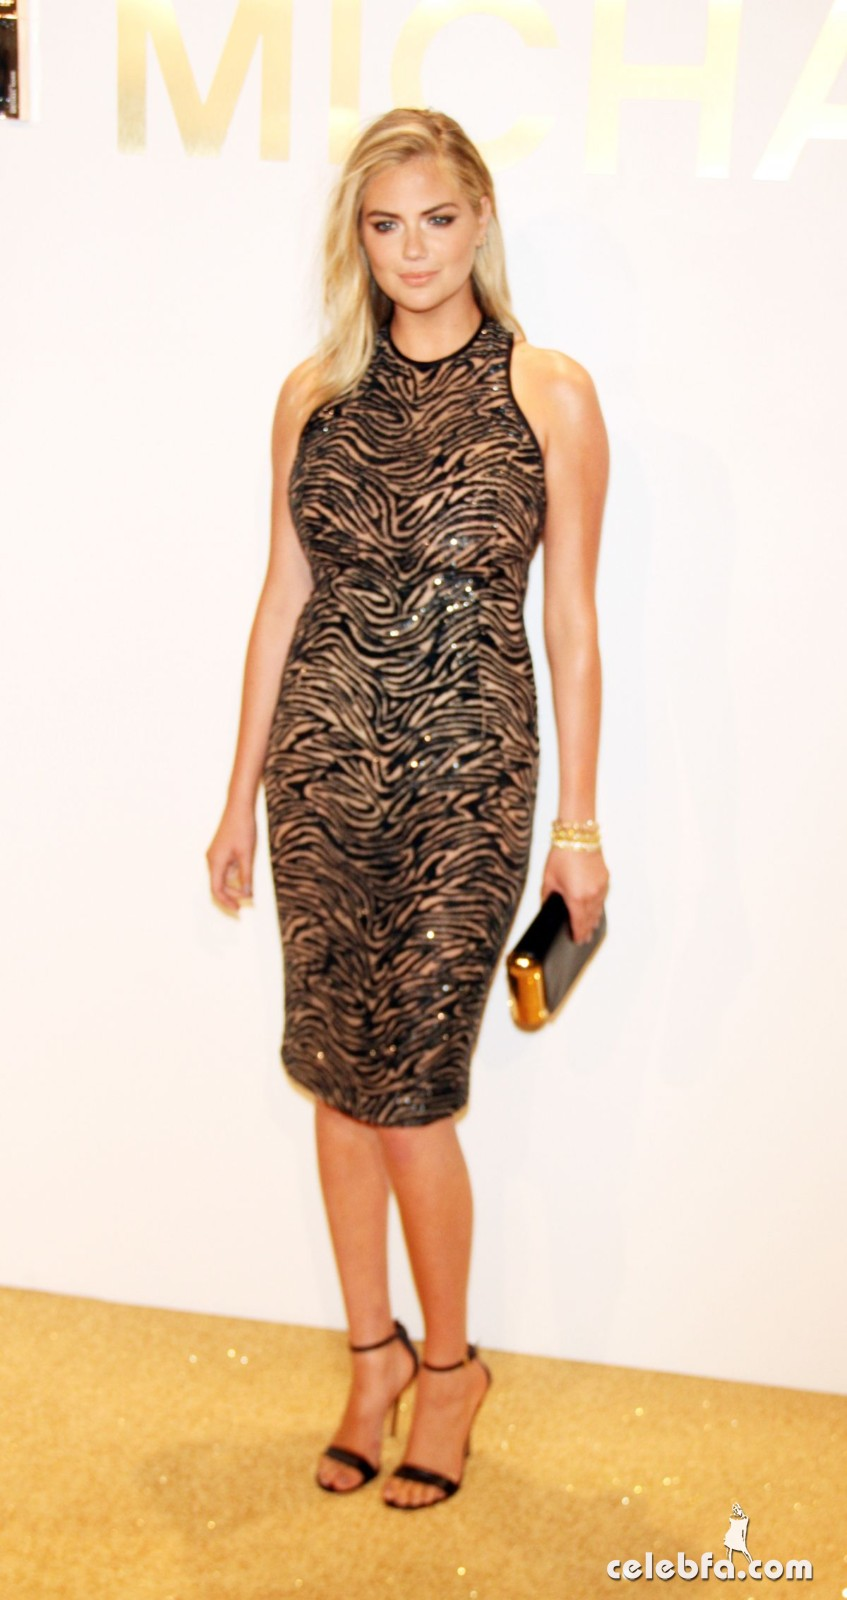 kate-upton-at-gold-collection-fragrance-launch-by-michael-kors-in-new-york (2)